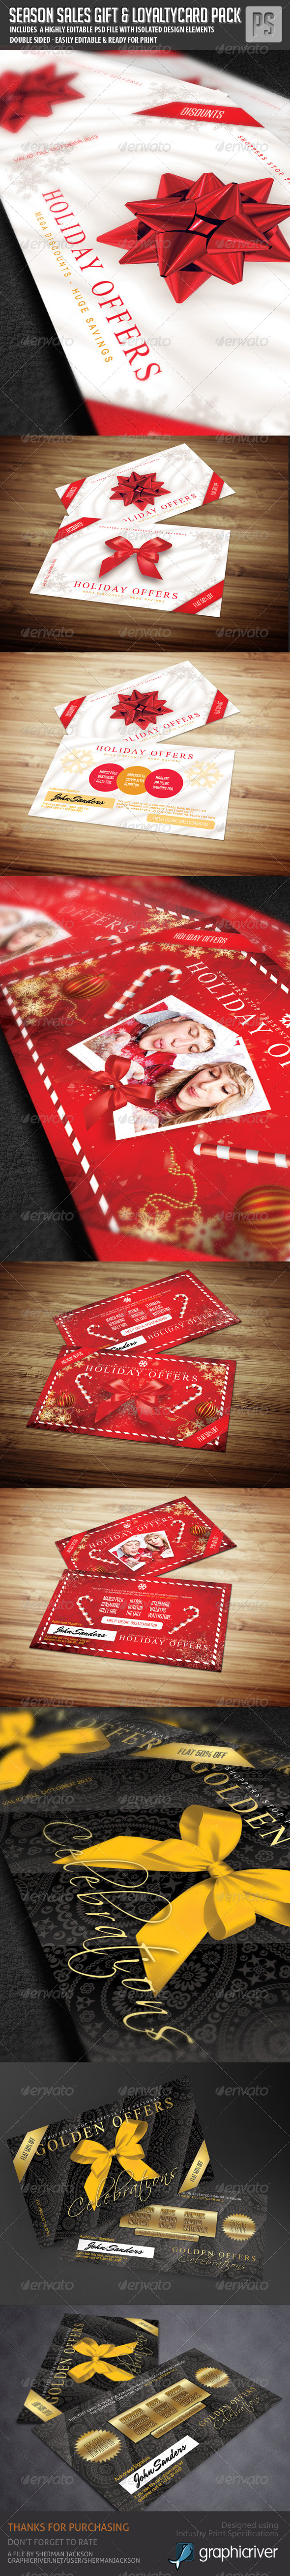 Gift Card / Loyalty Card Bundle (3in1) - Loyalty Cards Cards & Invites